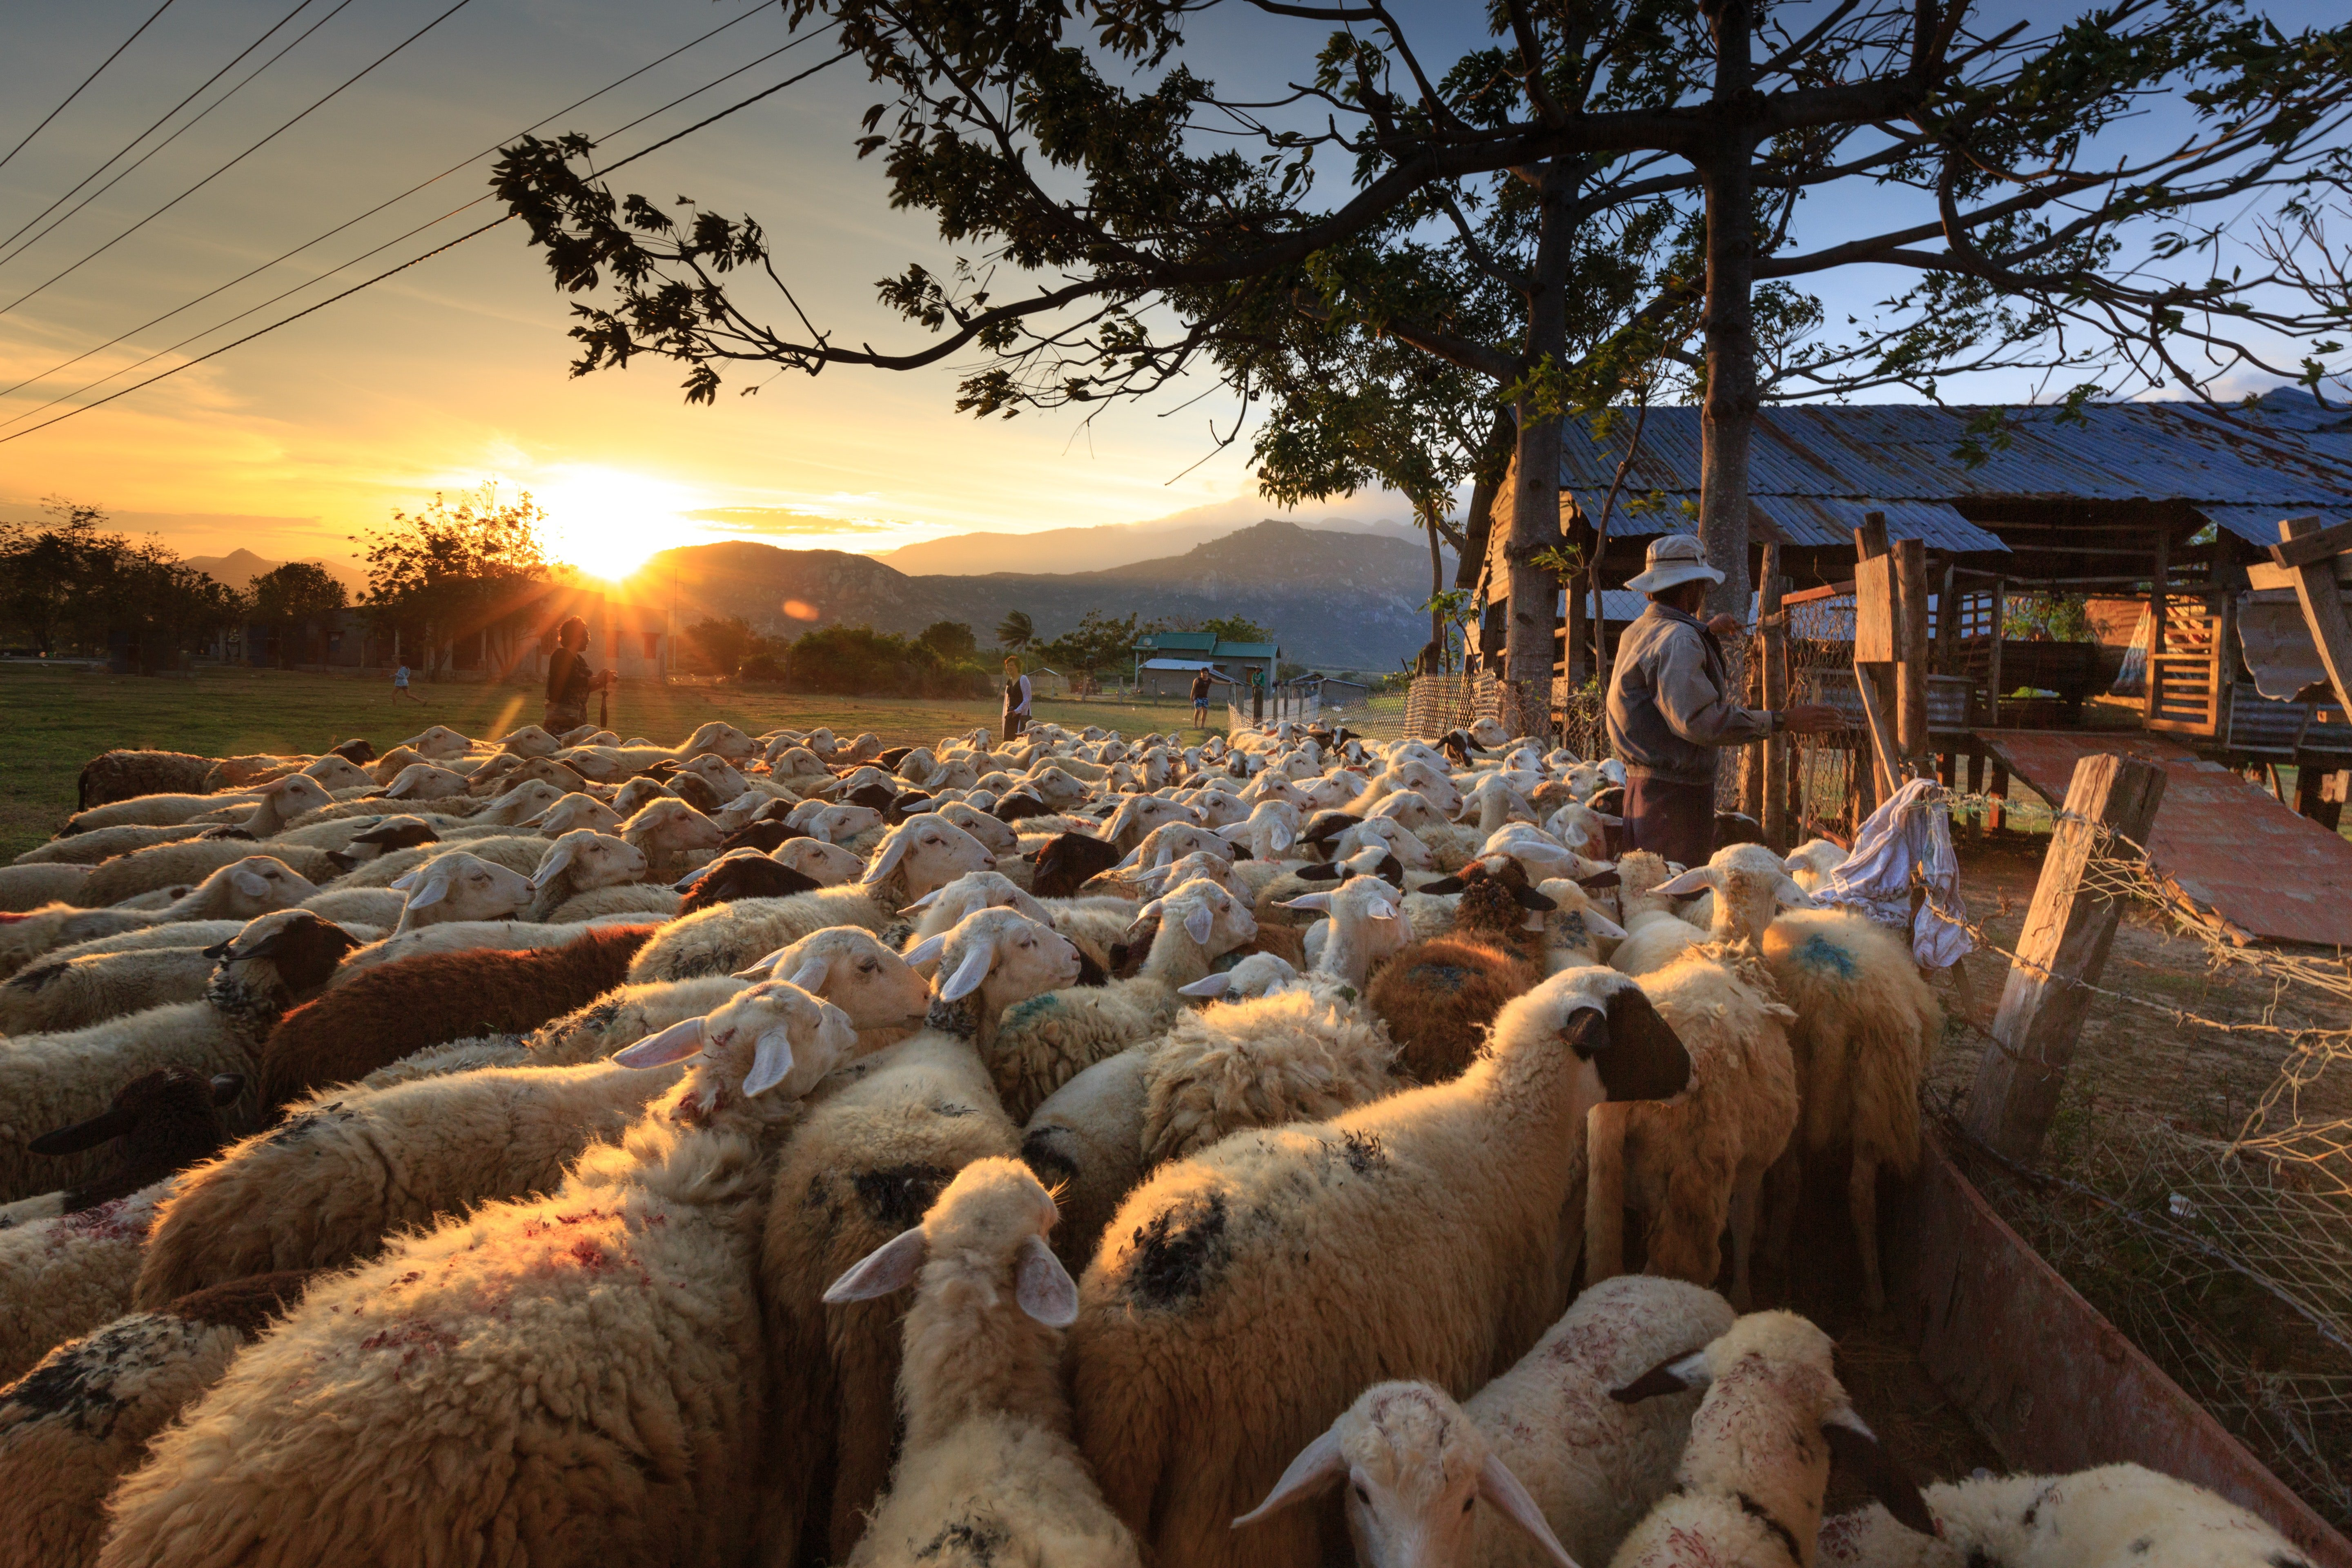 Pictured - An image of a herd of sheep standing outside a yard with a shepherd   Source: Pexels